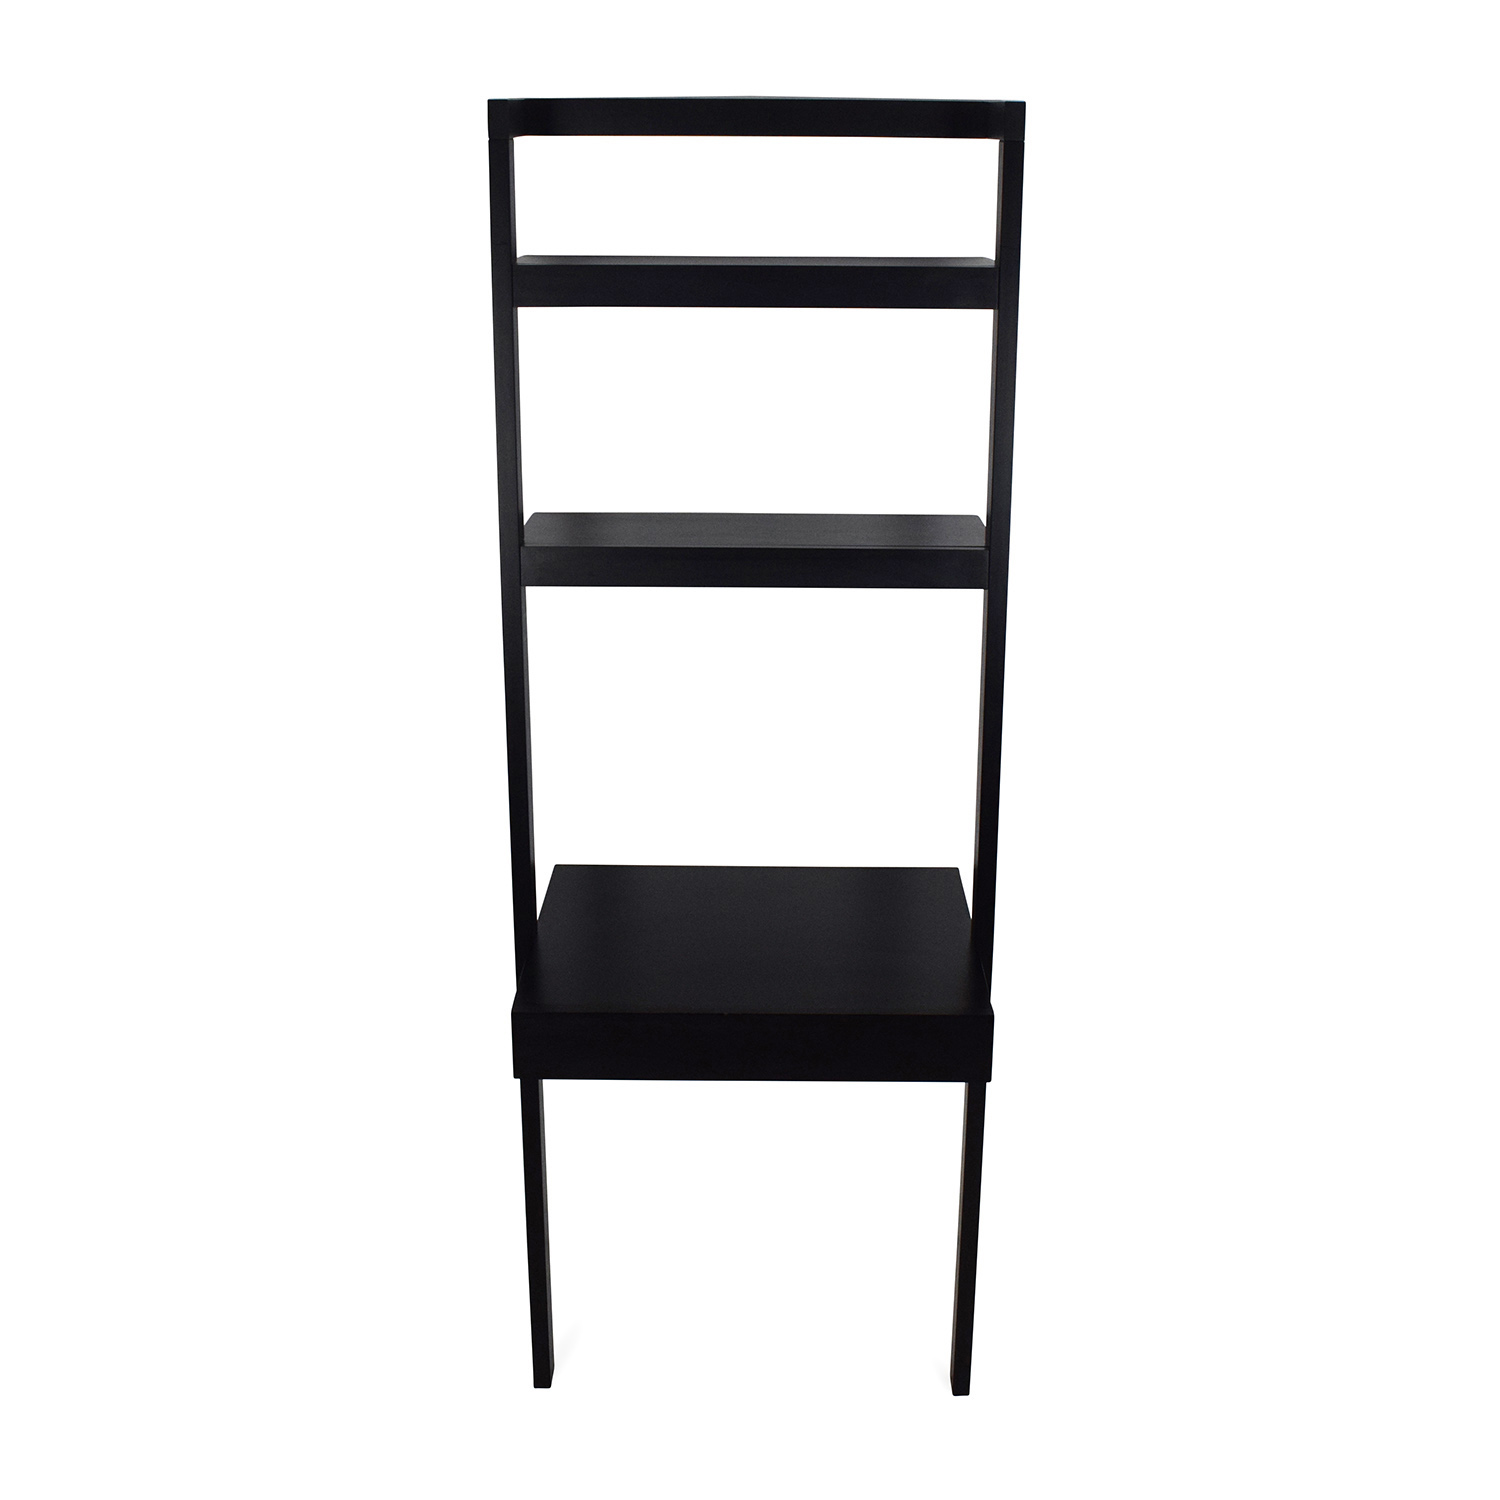 Crate and Barrel Crate and Barrel Leaning Shelf used